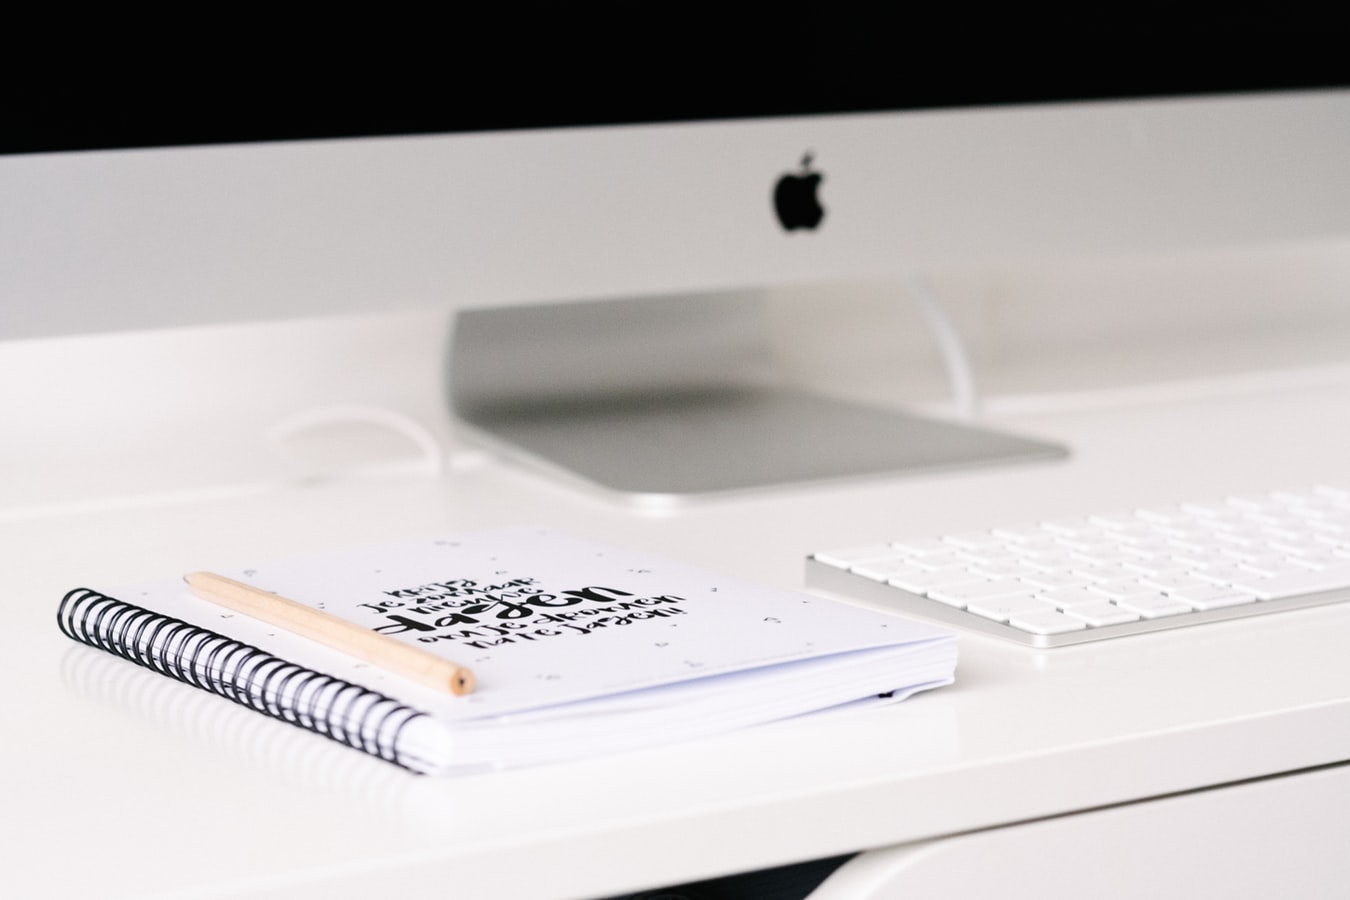 how to increase productivity at home, imac with planner and keyboard